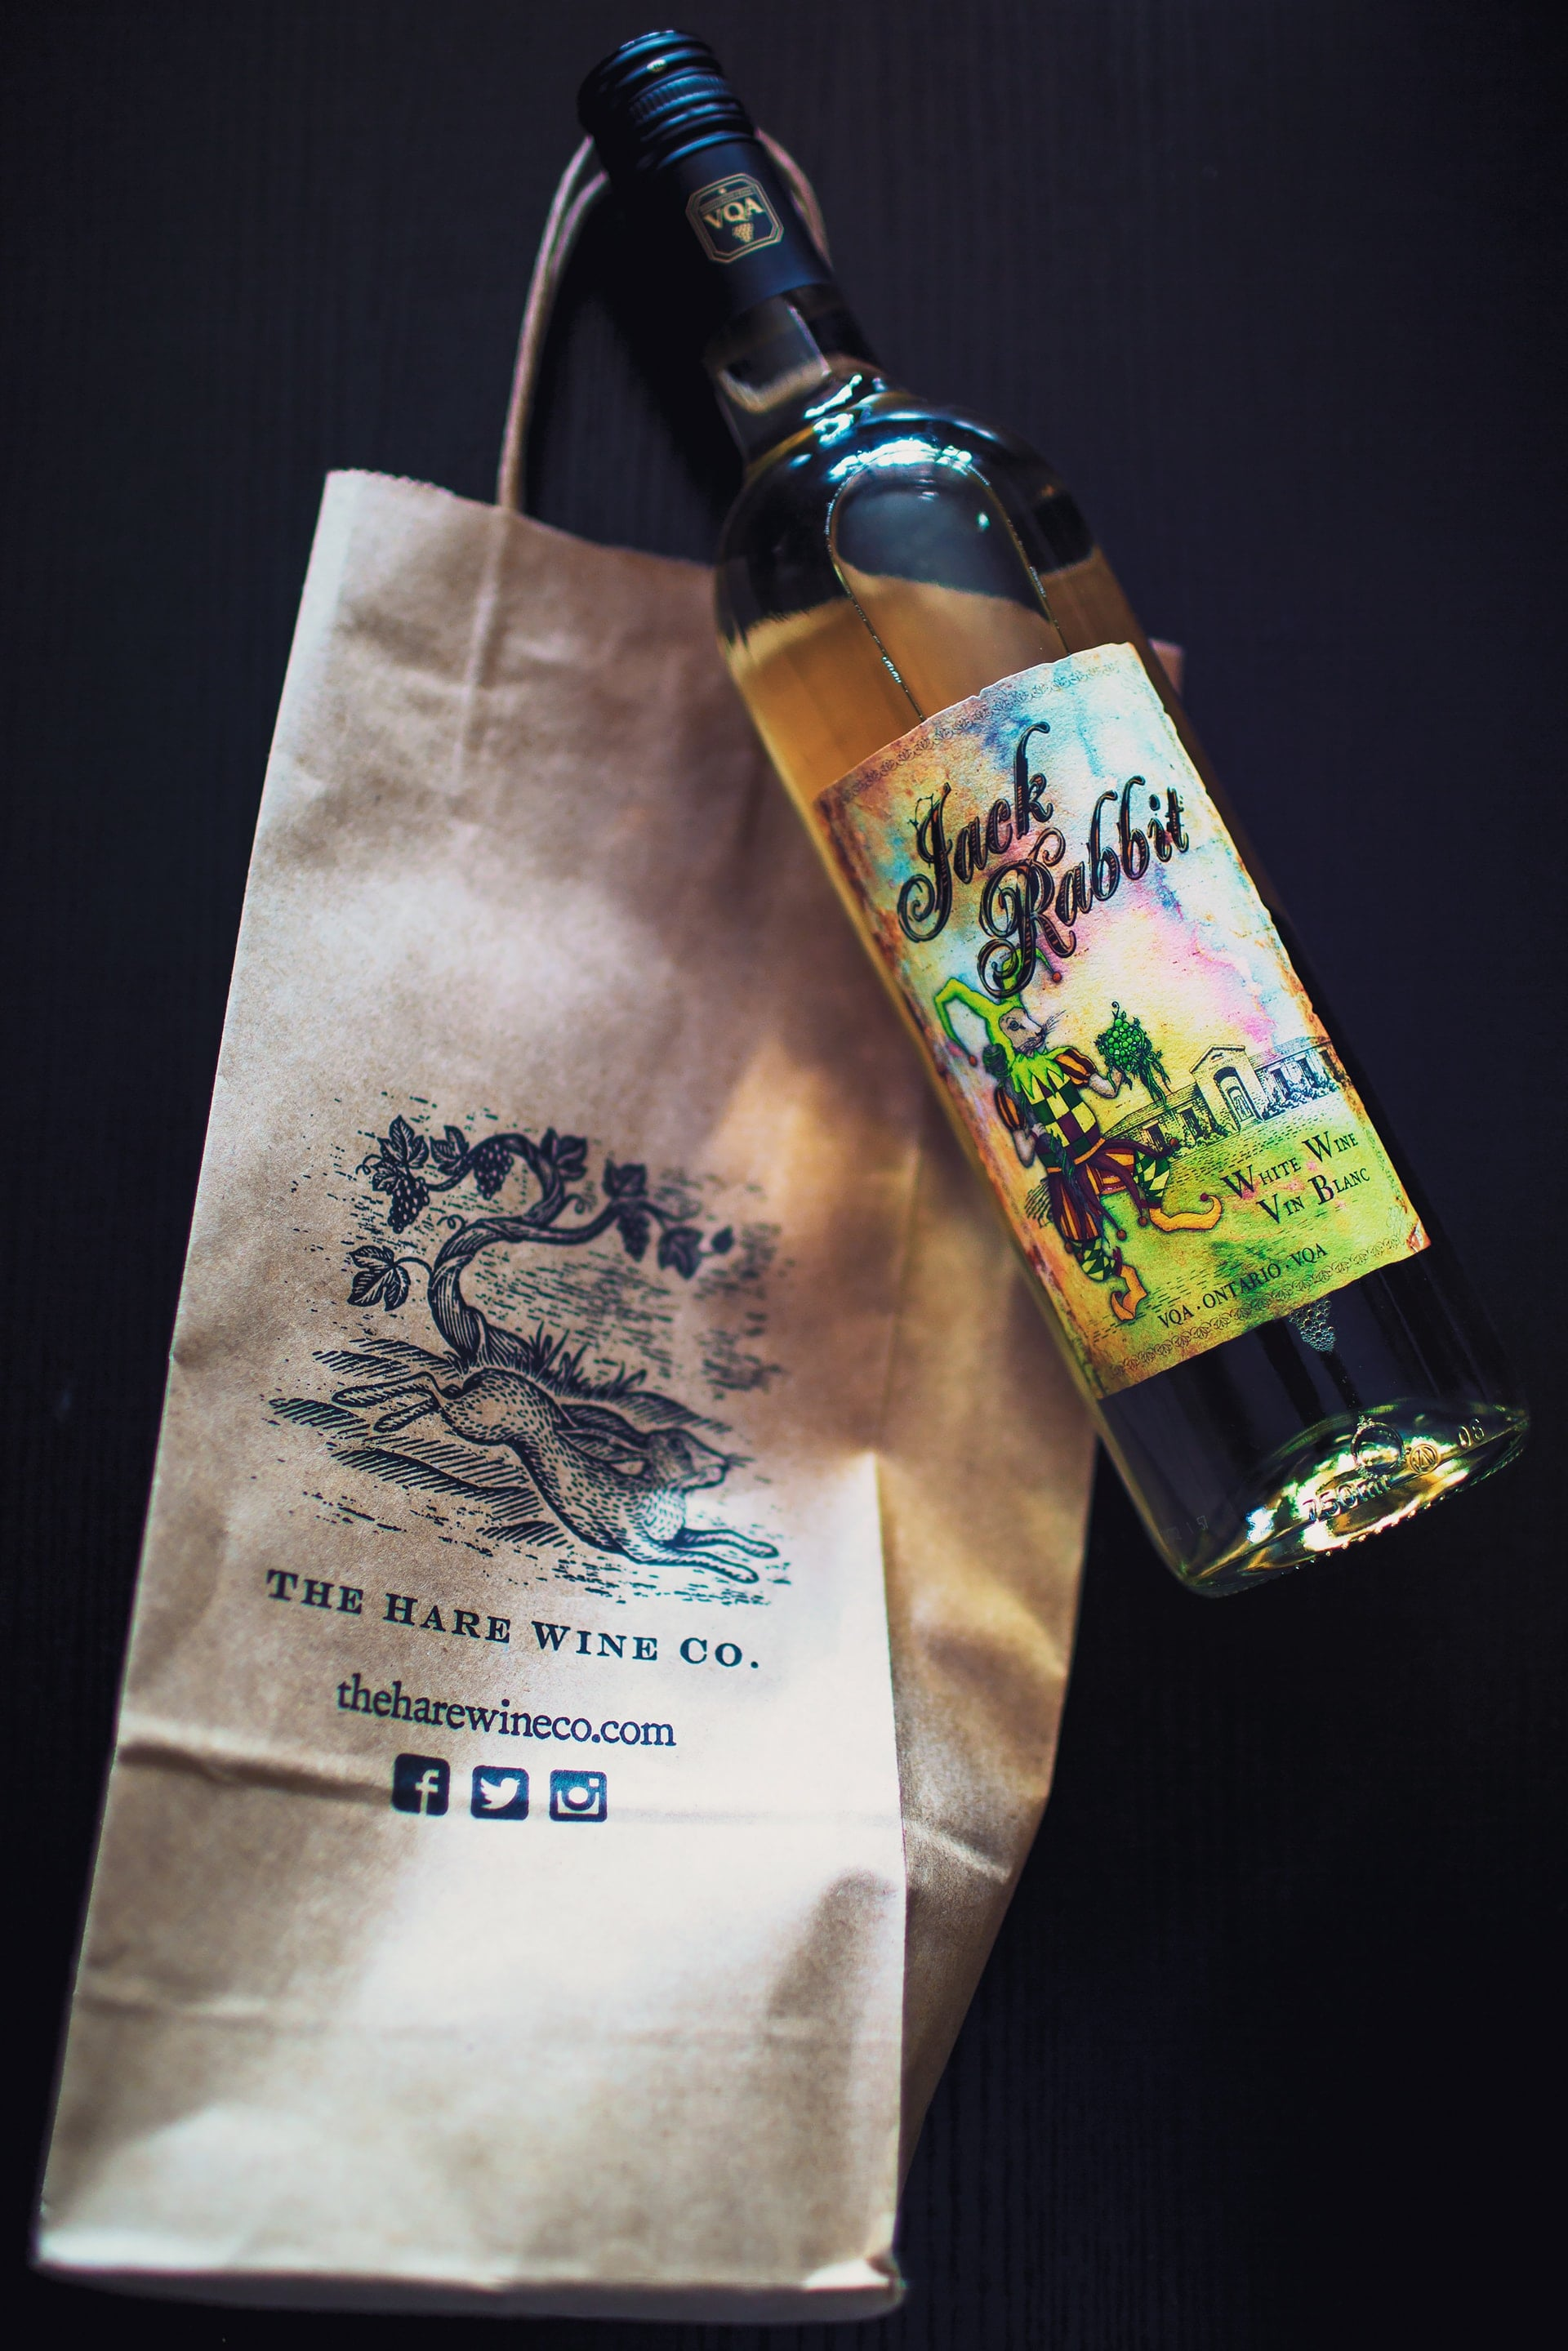 Jack Rabbit win from the Hare Wine Co